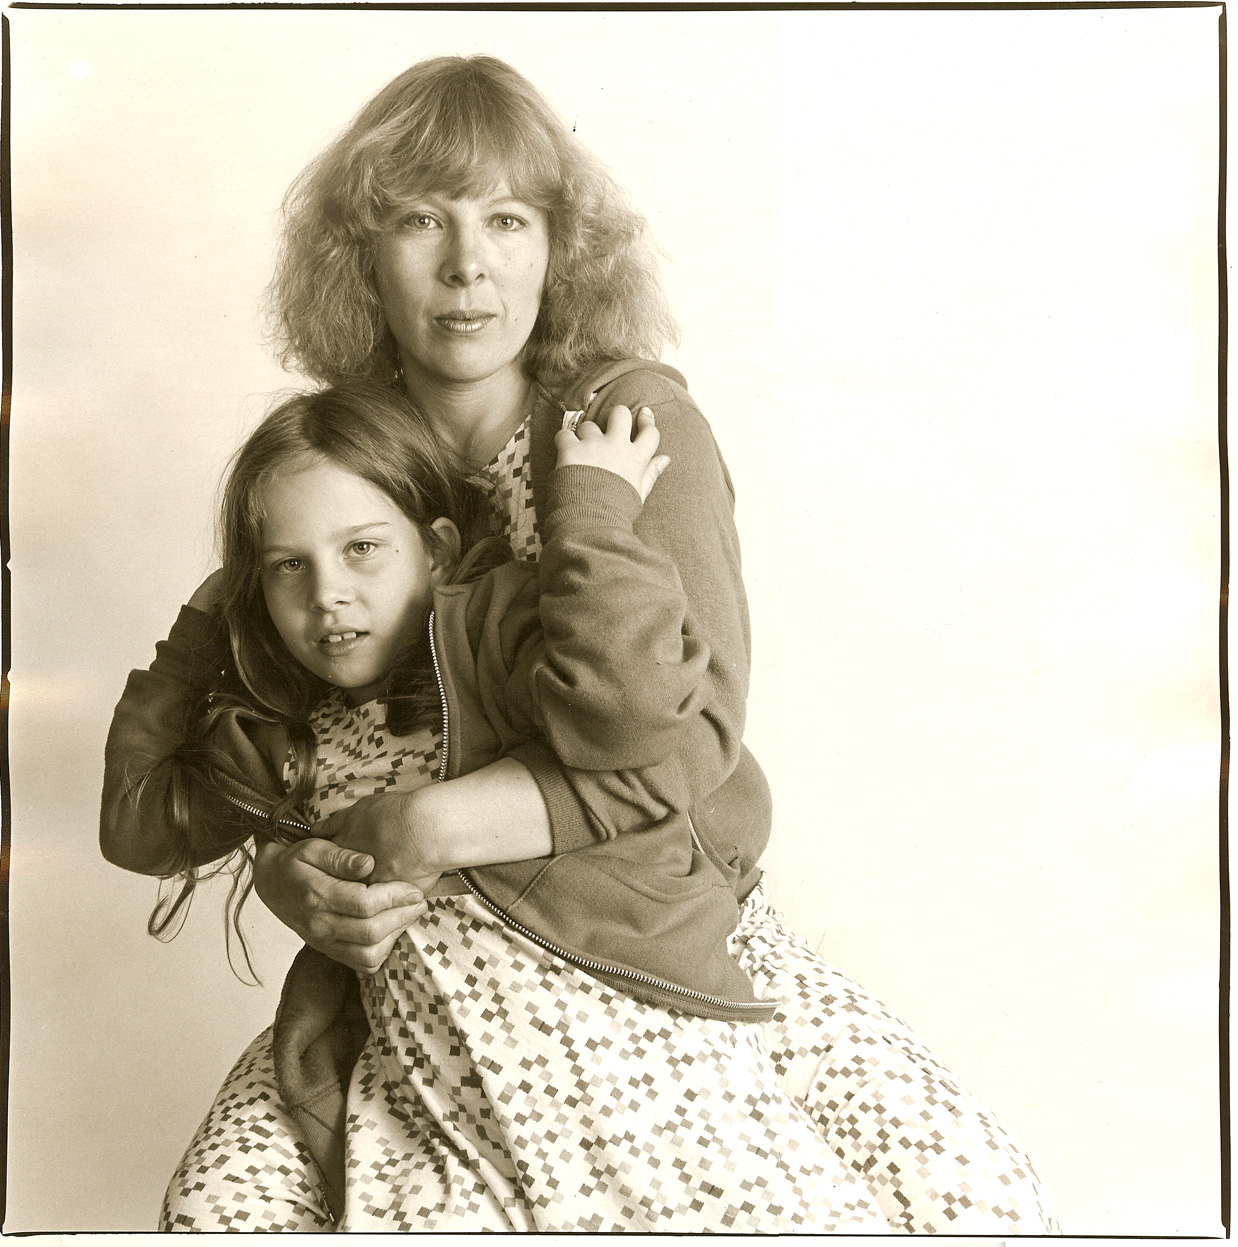 My mother and I in matching dresses. 1980. Photo credit:  Sarah Longacre .